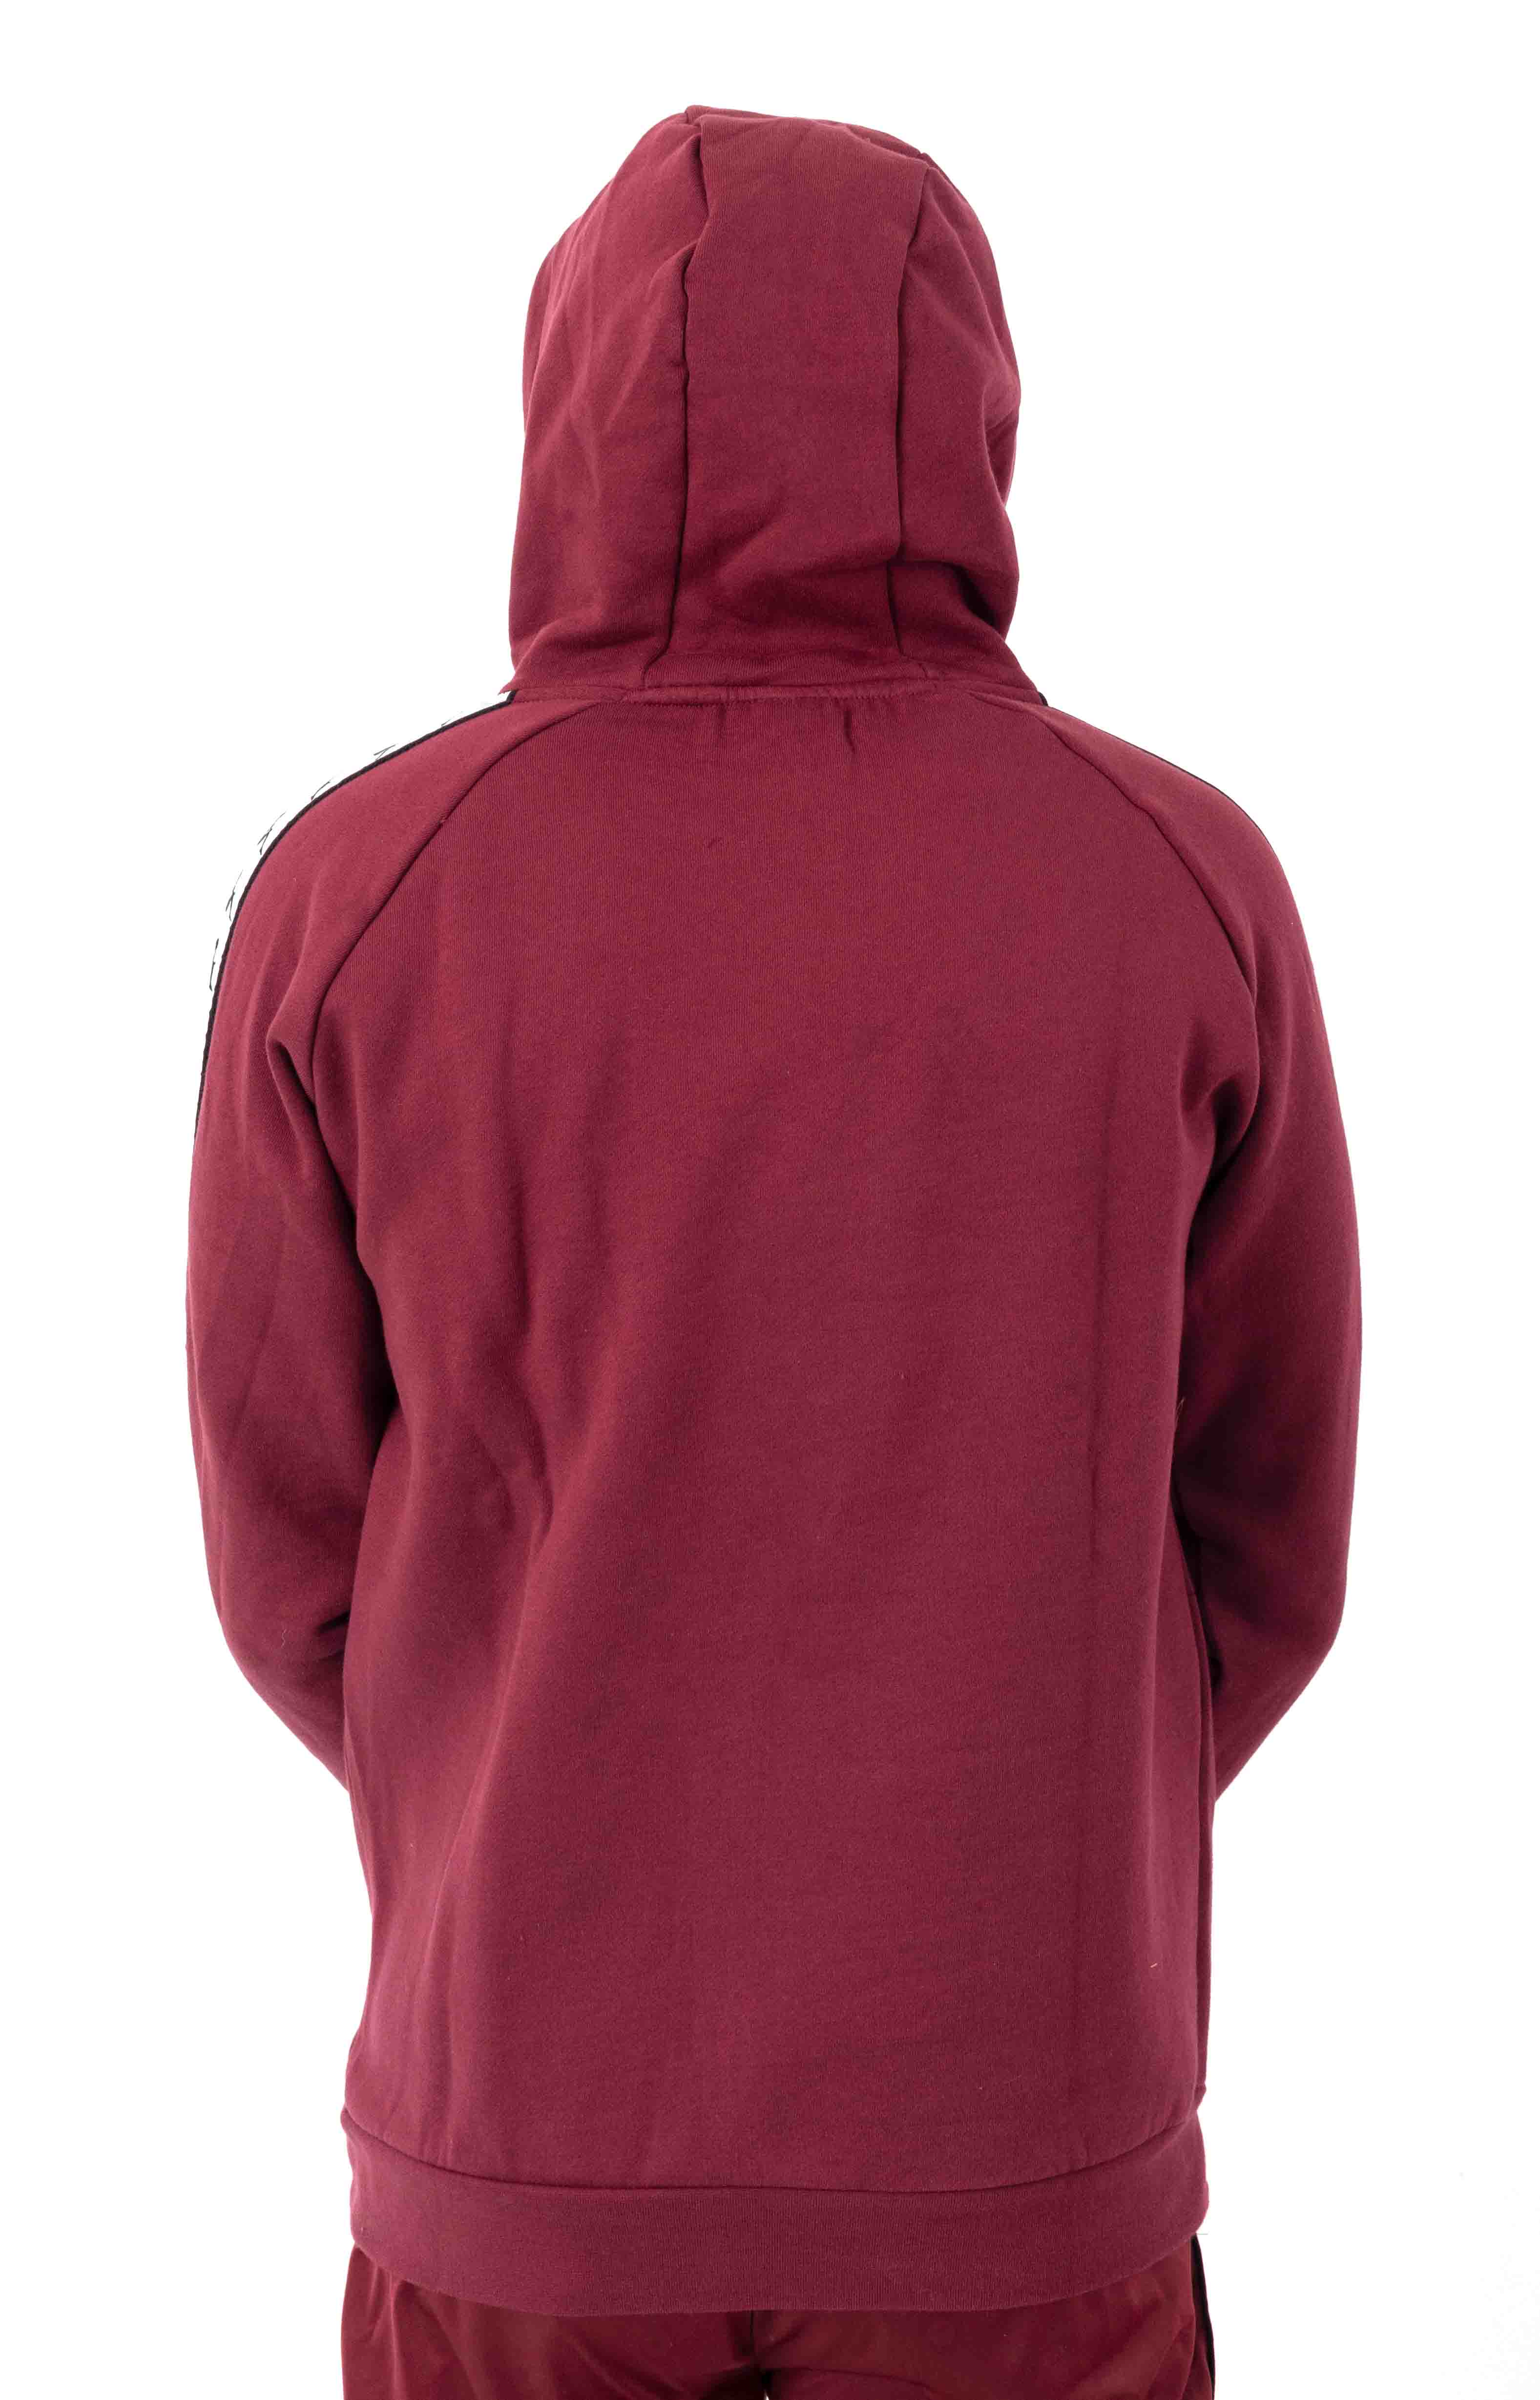 222 Banda Authentic Hurtado 2 Pullover Hoodie - Red Dahlia/White 3